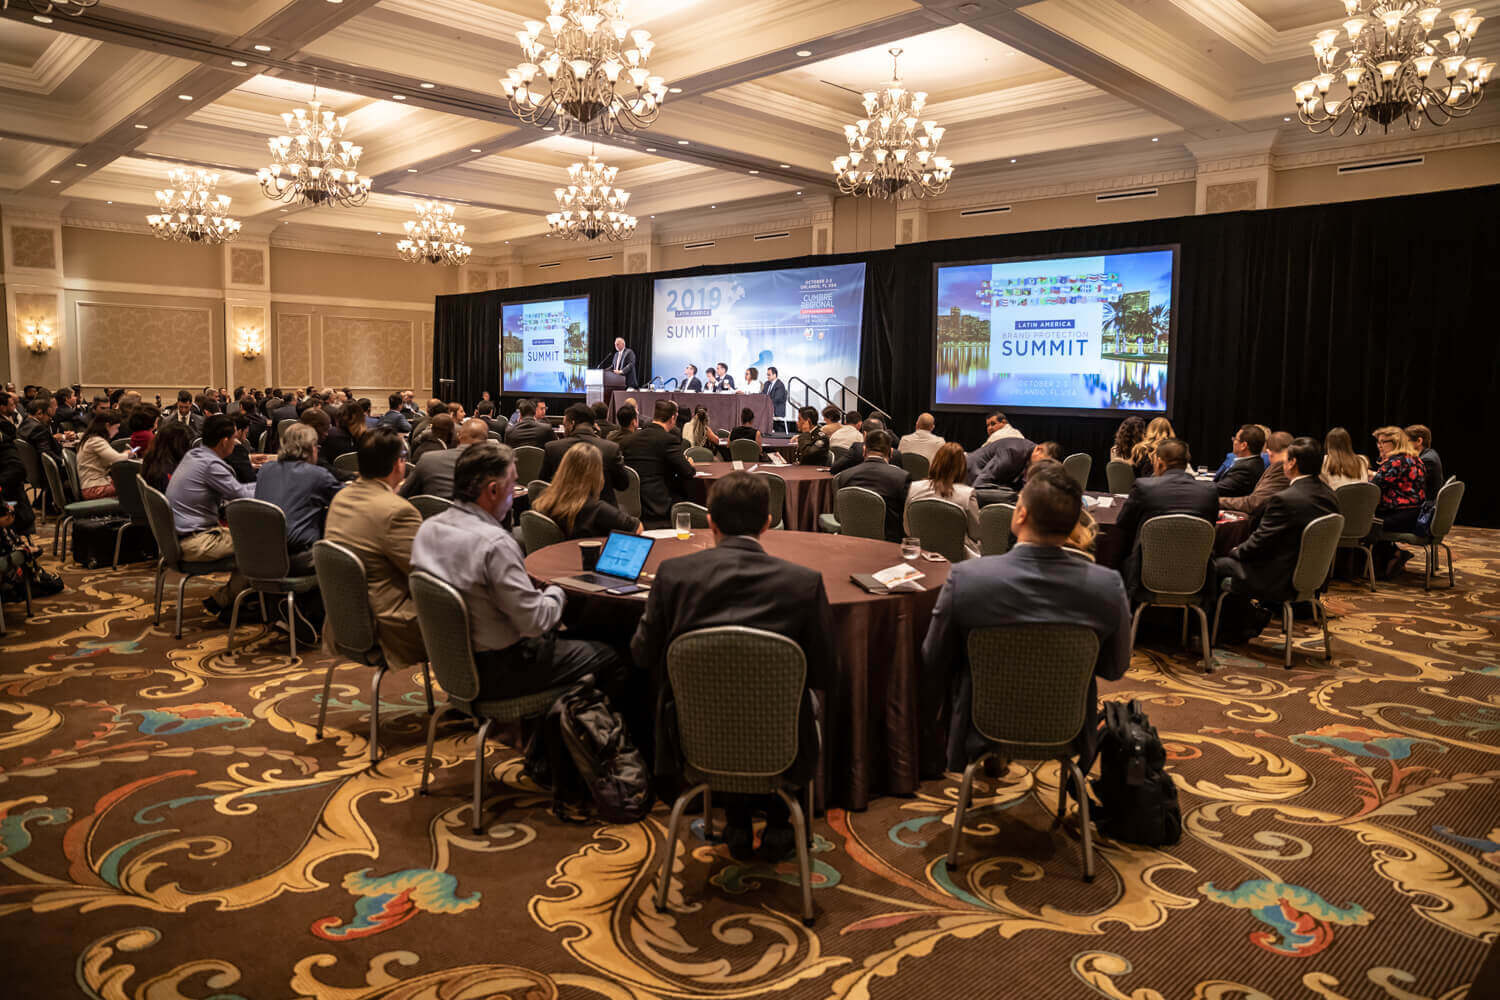 IACC's Third LatAm Summit Draws Largest and Most Diverse Group of Attendees to Date!